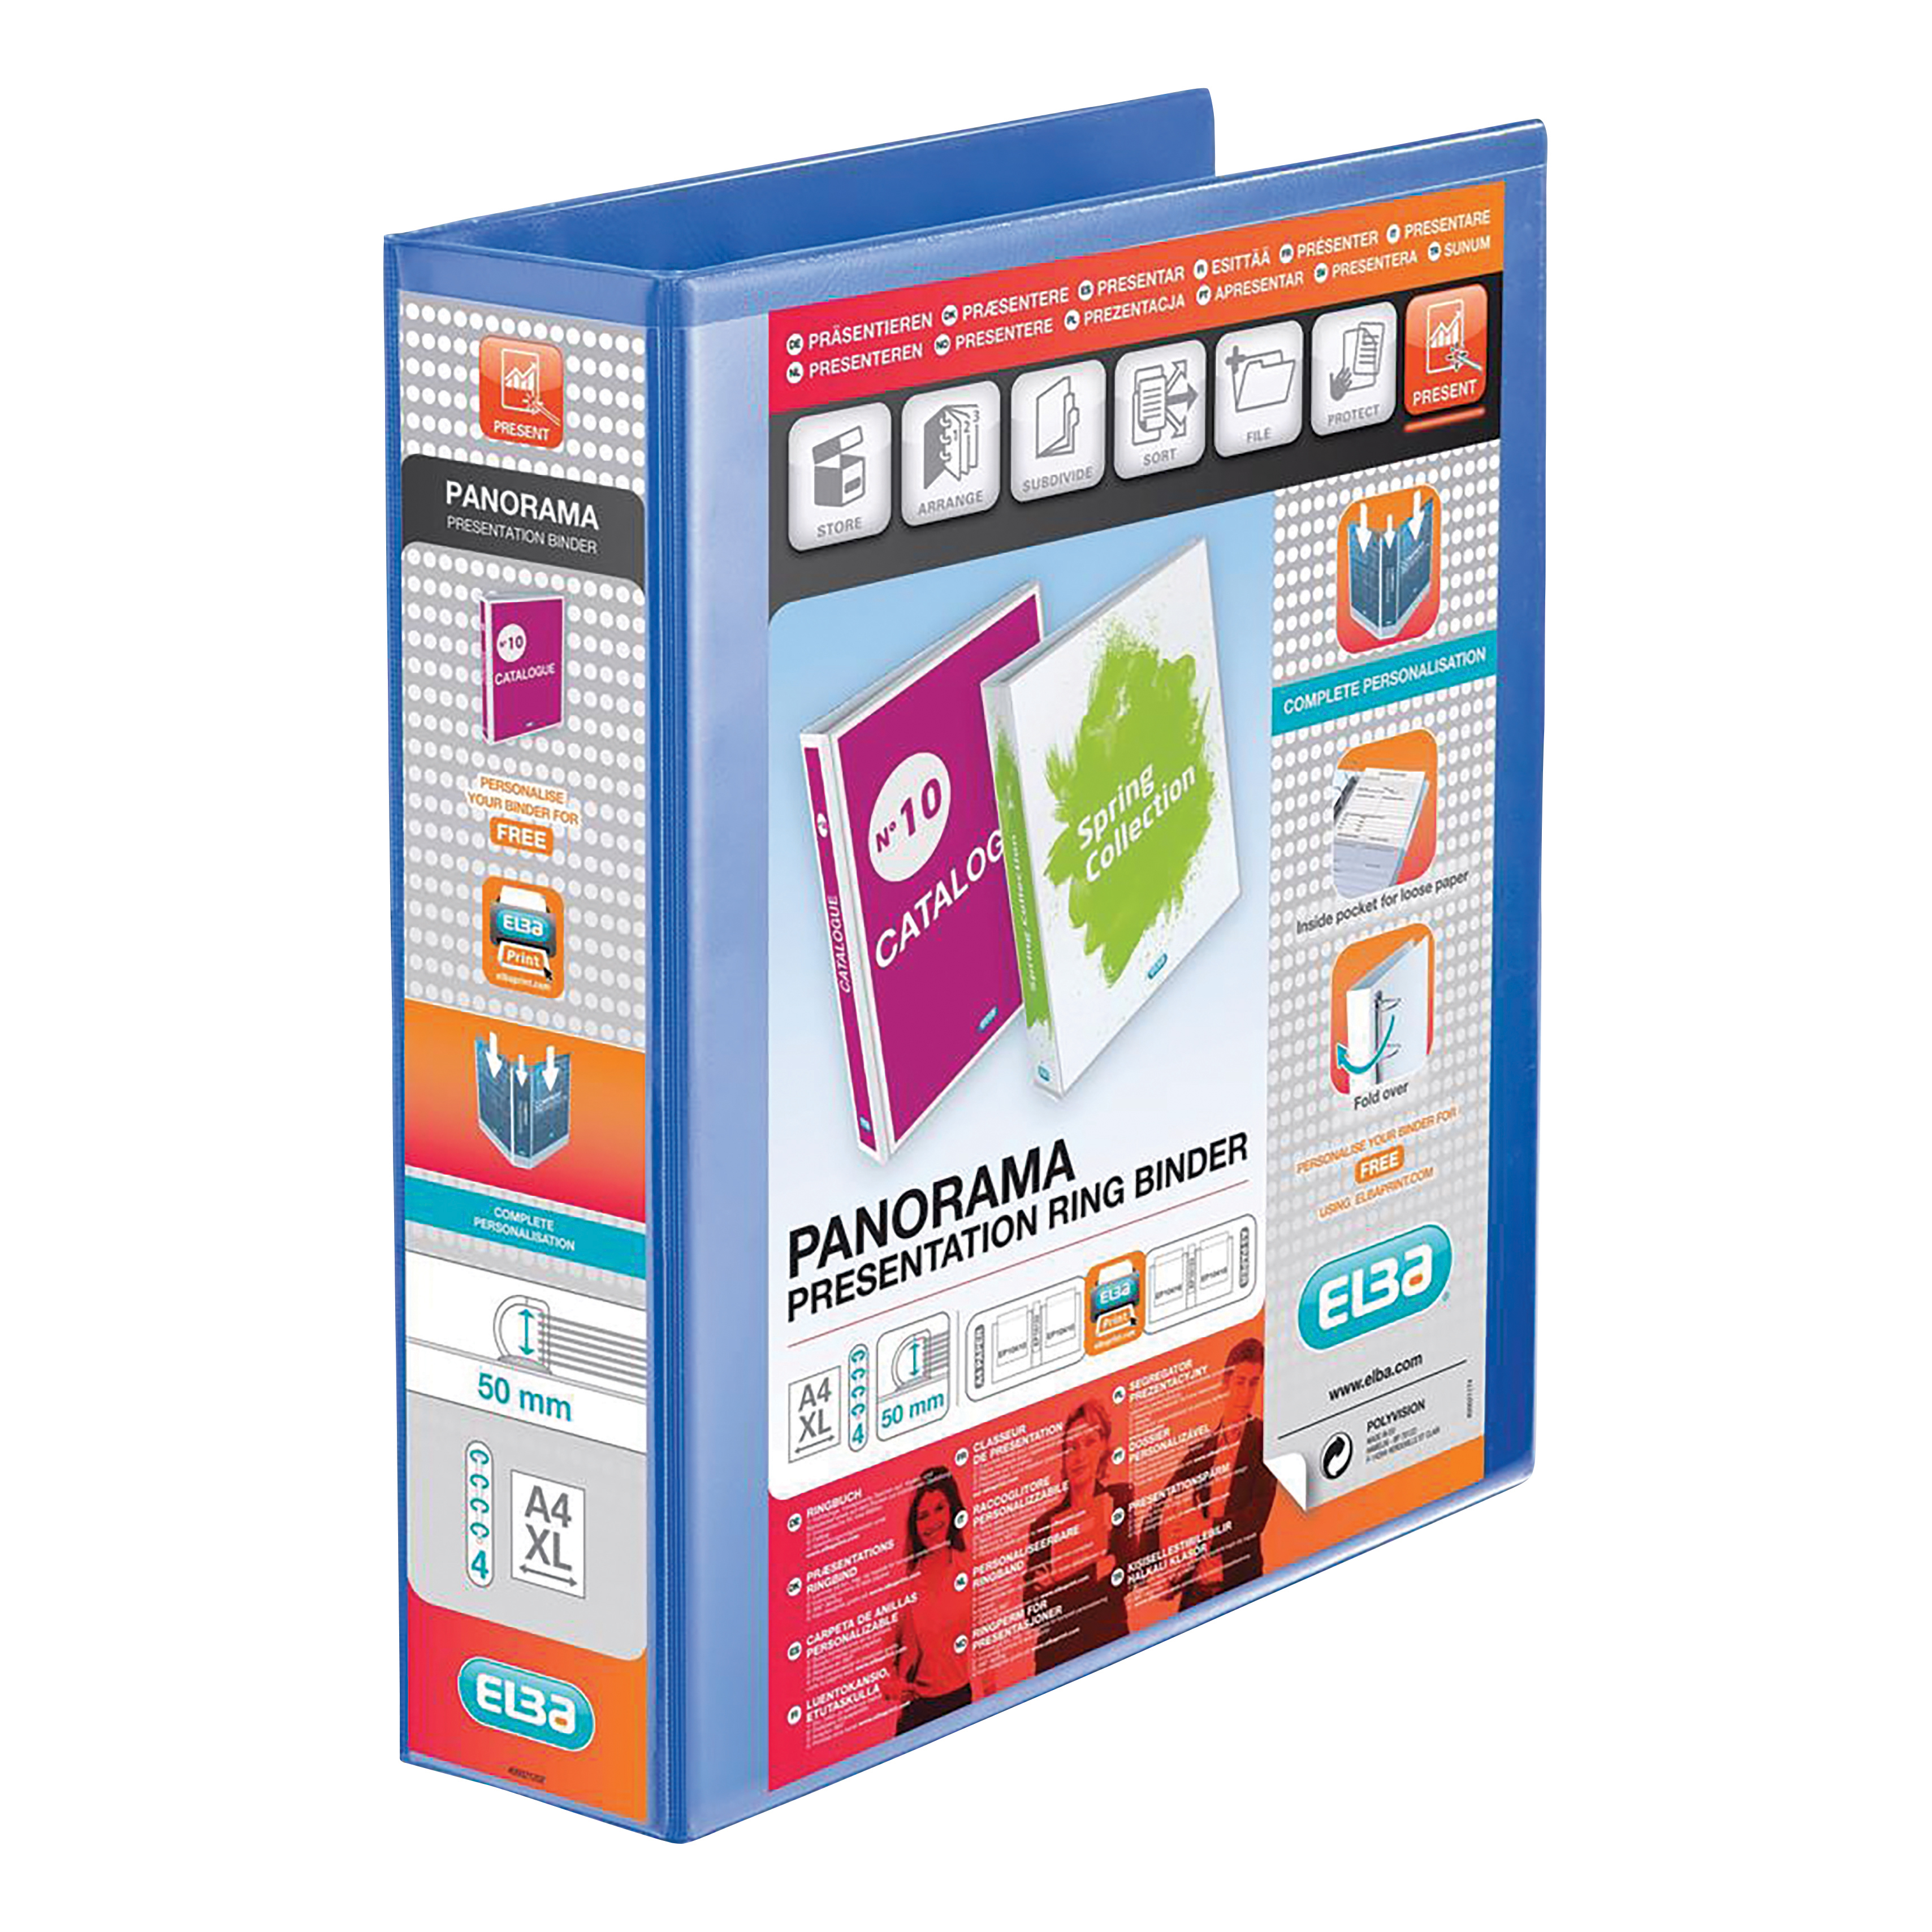 Elba Panorama Presentation Ring Binder PP 4 D-Ring 50mm Capacity A4 Blue Ref 400008431 [Pack 4]